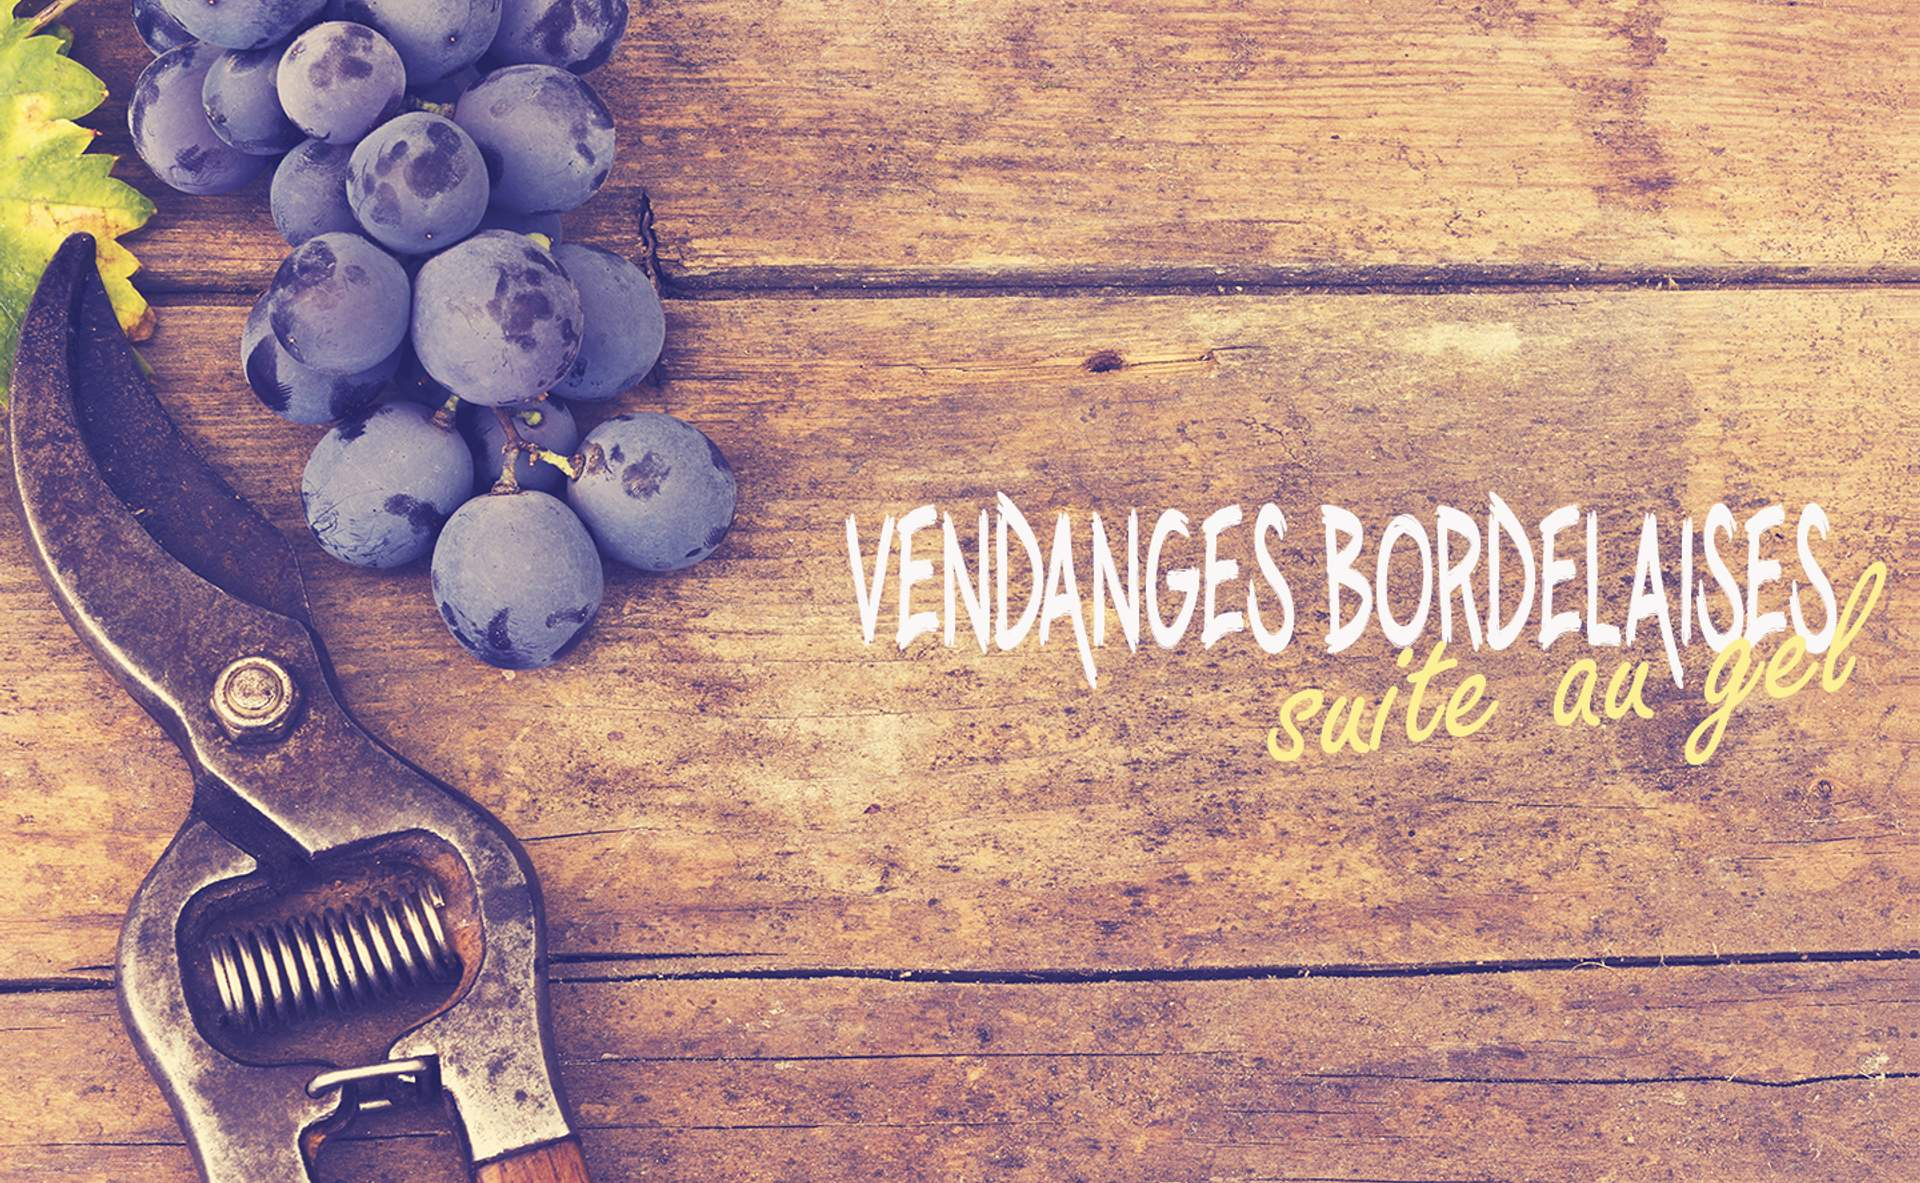 Vendanges dans le bordelais suite au gel